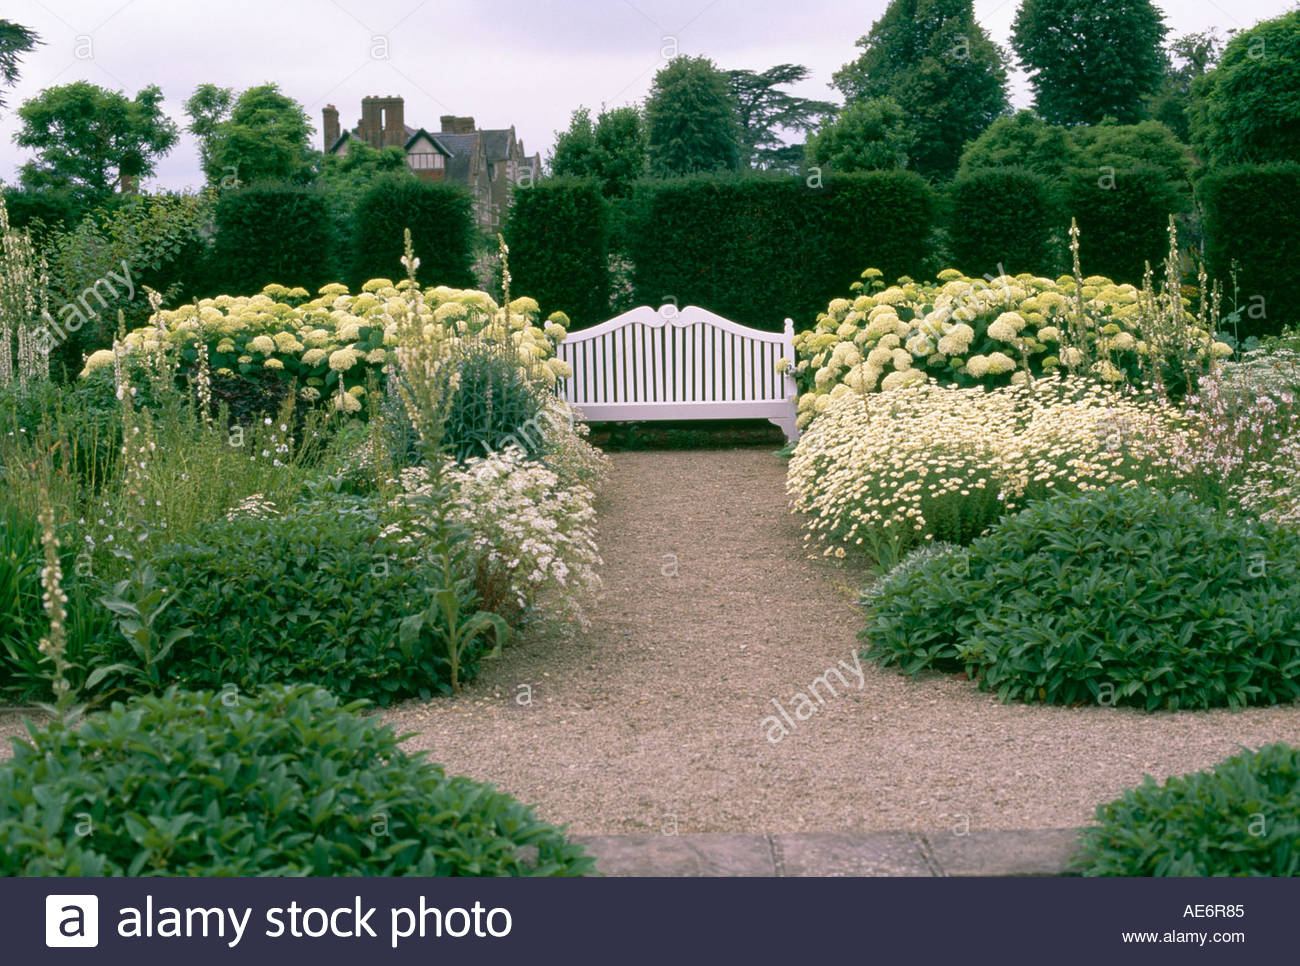 der wei e garten im loseley park stockfoto bild 4435844 alamy. Black Bedroom Furniture Sets. Home Design Ideas